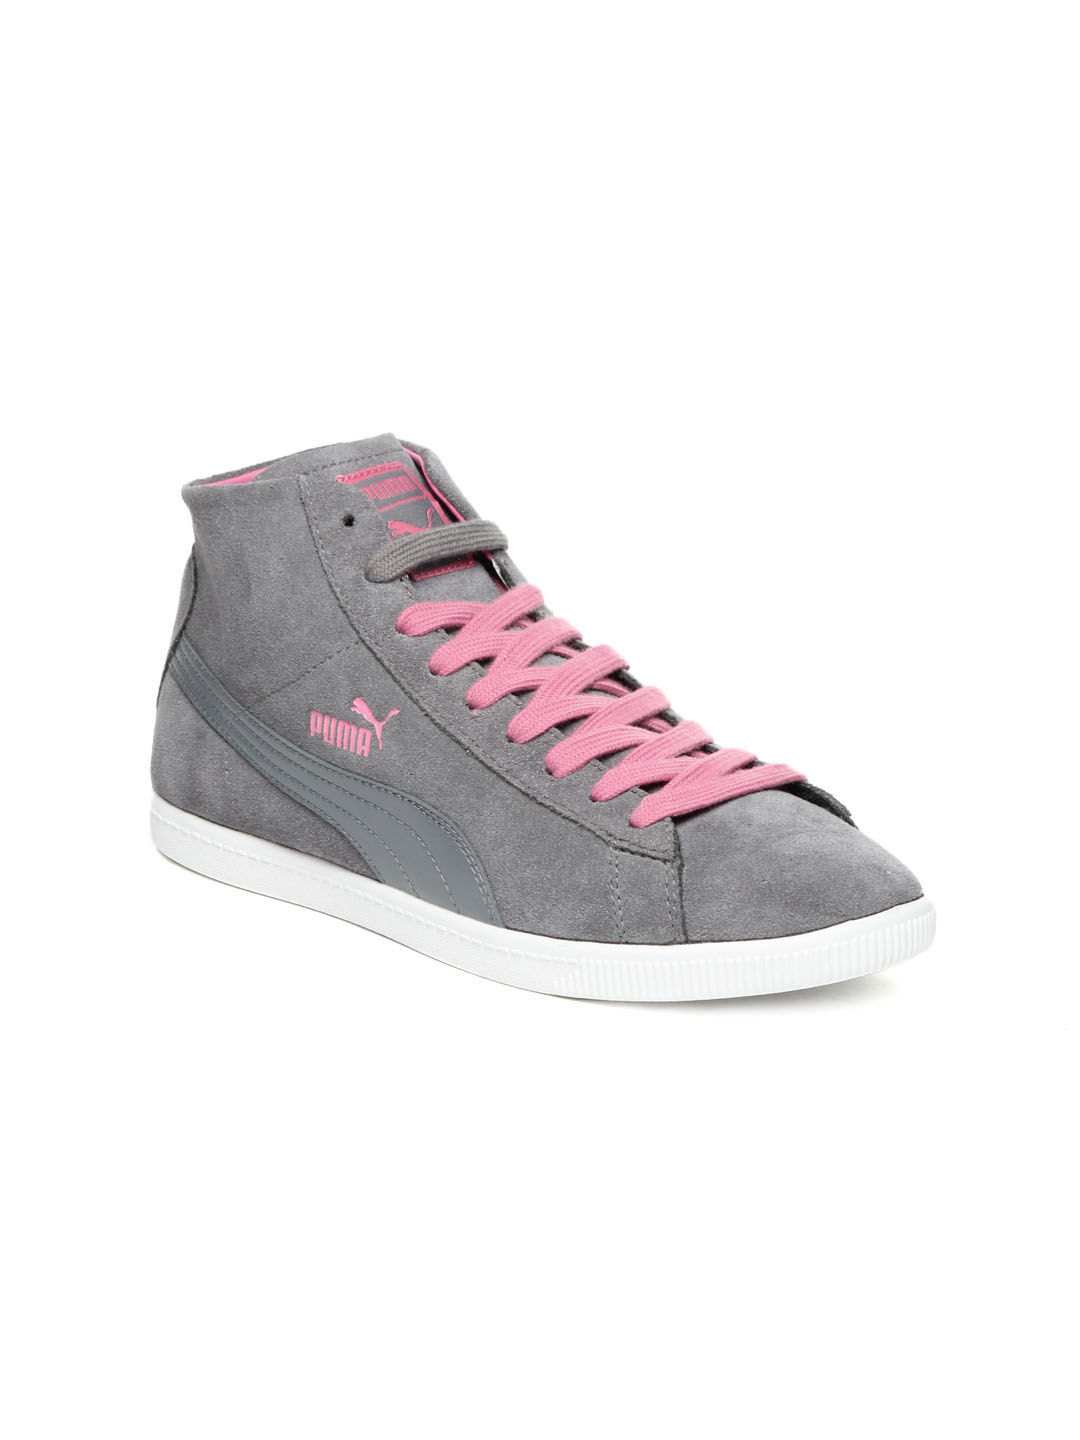 Puma Shoes for Women | Coat Pant